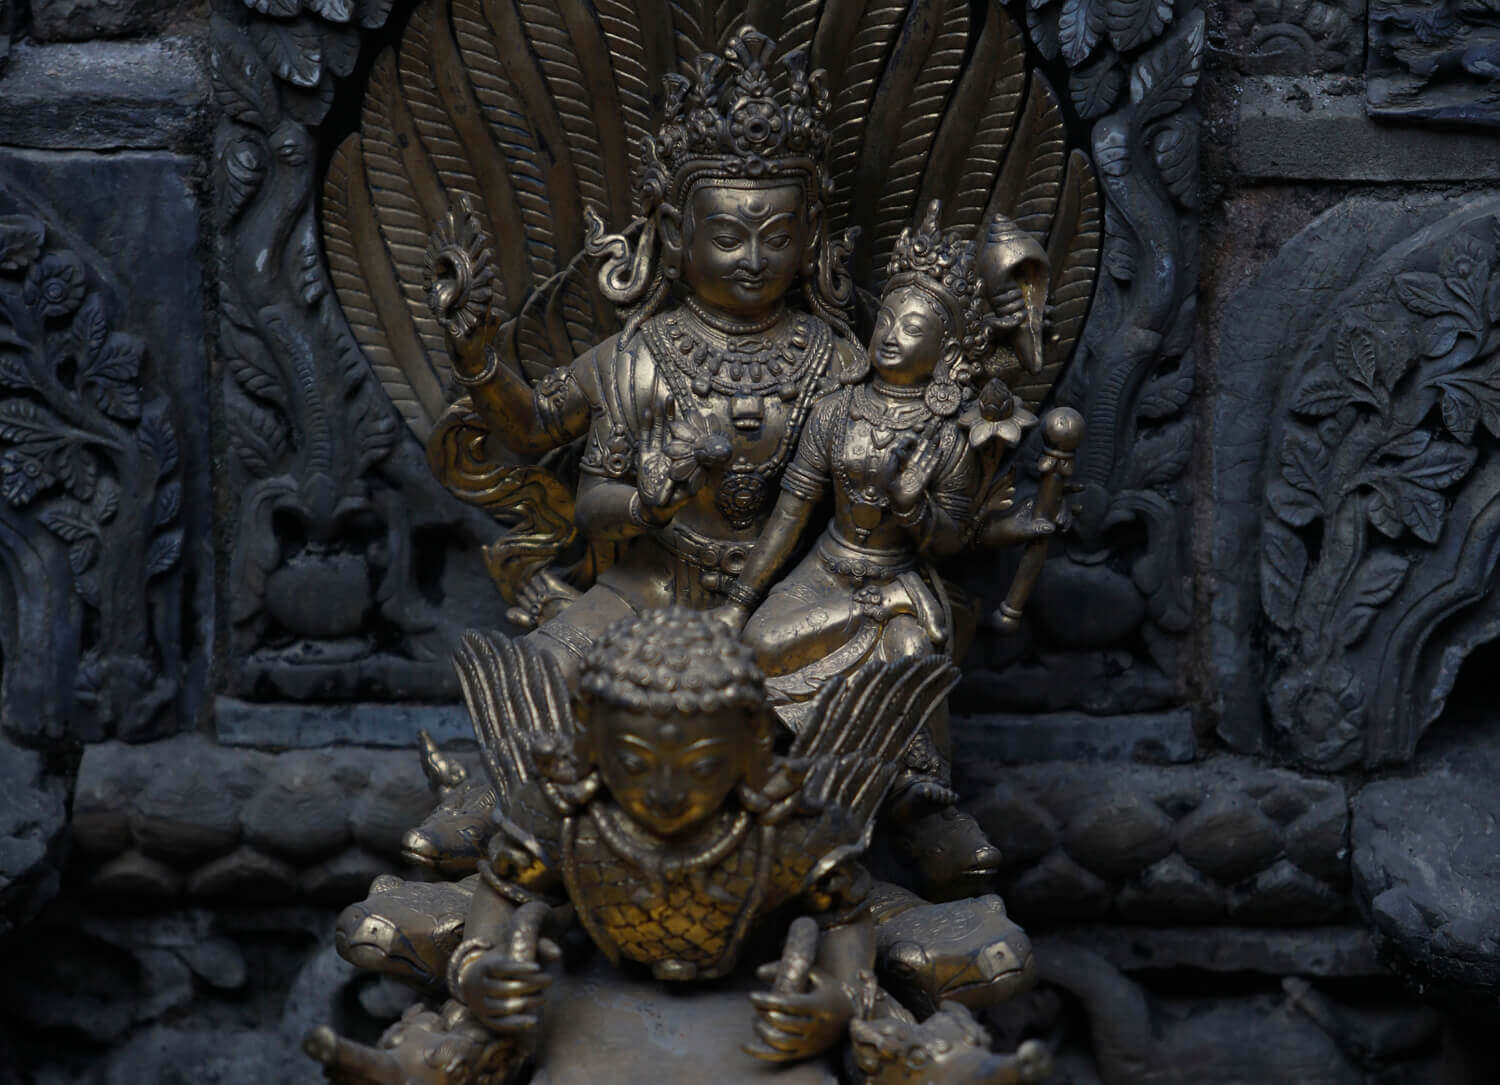 Replicating Nepal's stolen gods